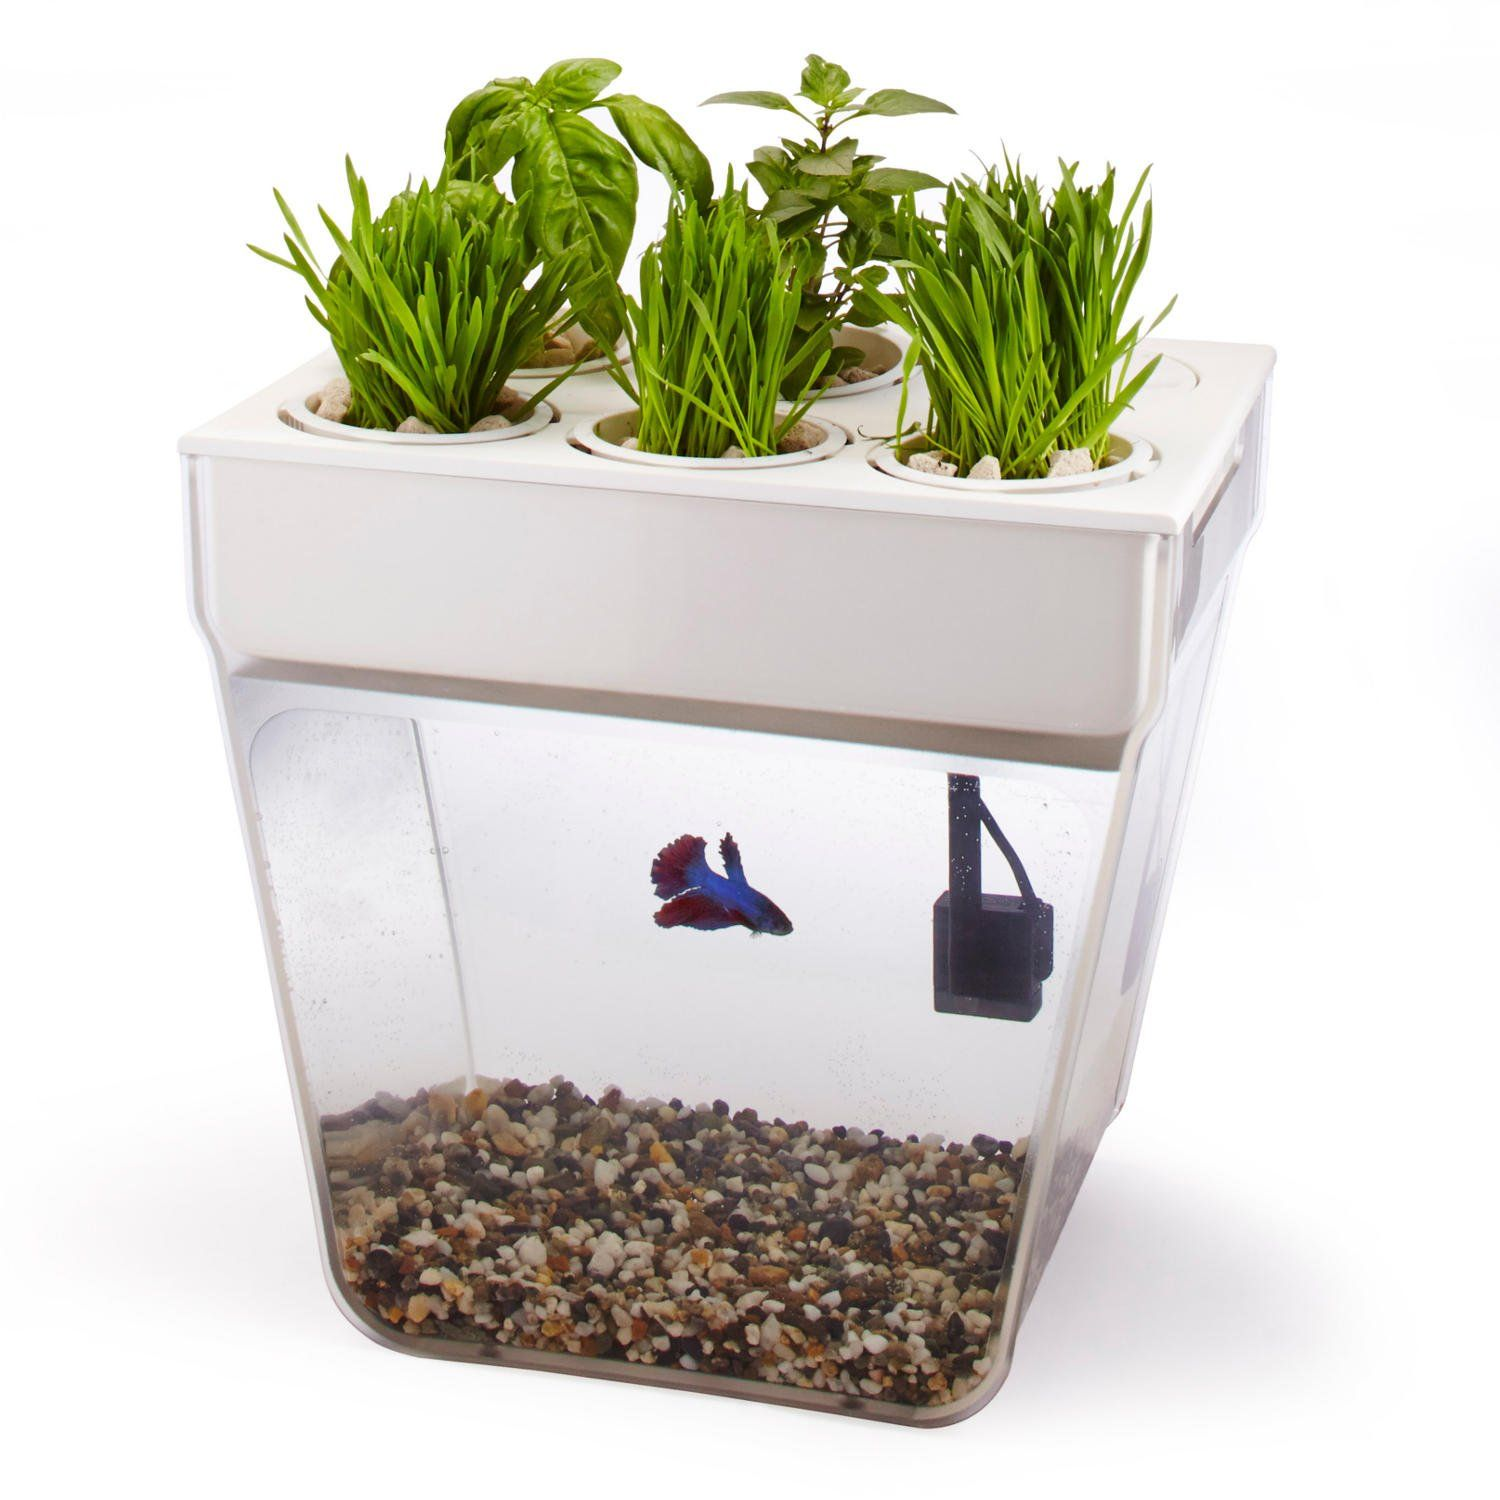 Back To The Roots Aquafarm 3 Gallon Fish Tank 12 L X 8 W X 12 H Petco Store With Images Aqua Farm Self Cleaning Fish Tank Water Garden